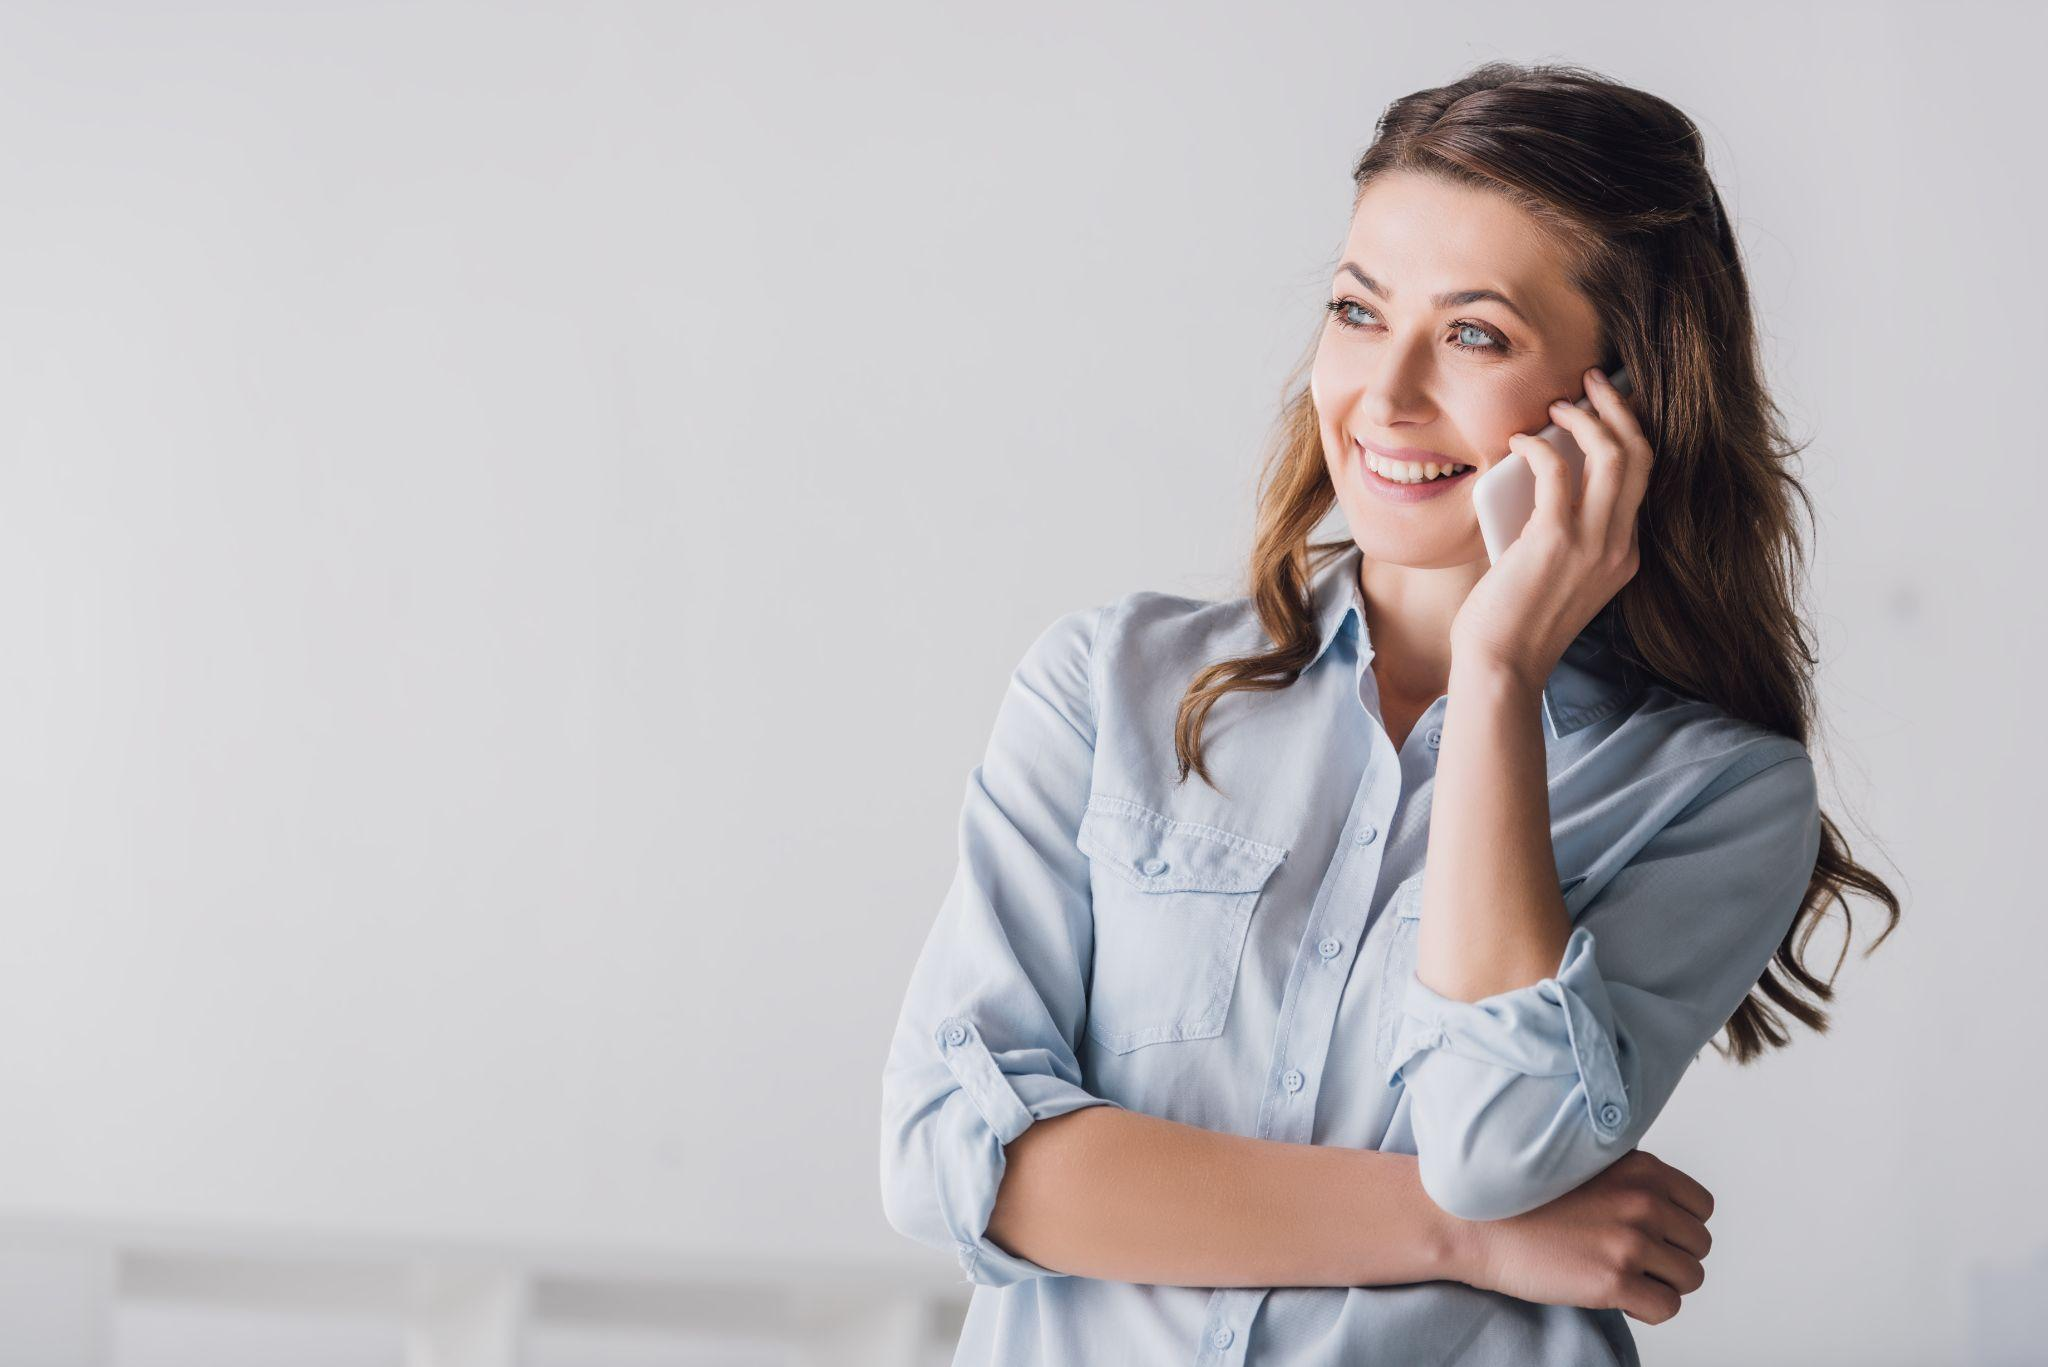 smiling adult woman talking on phone